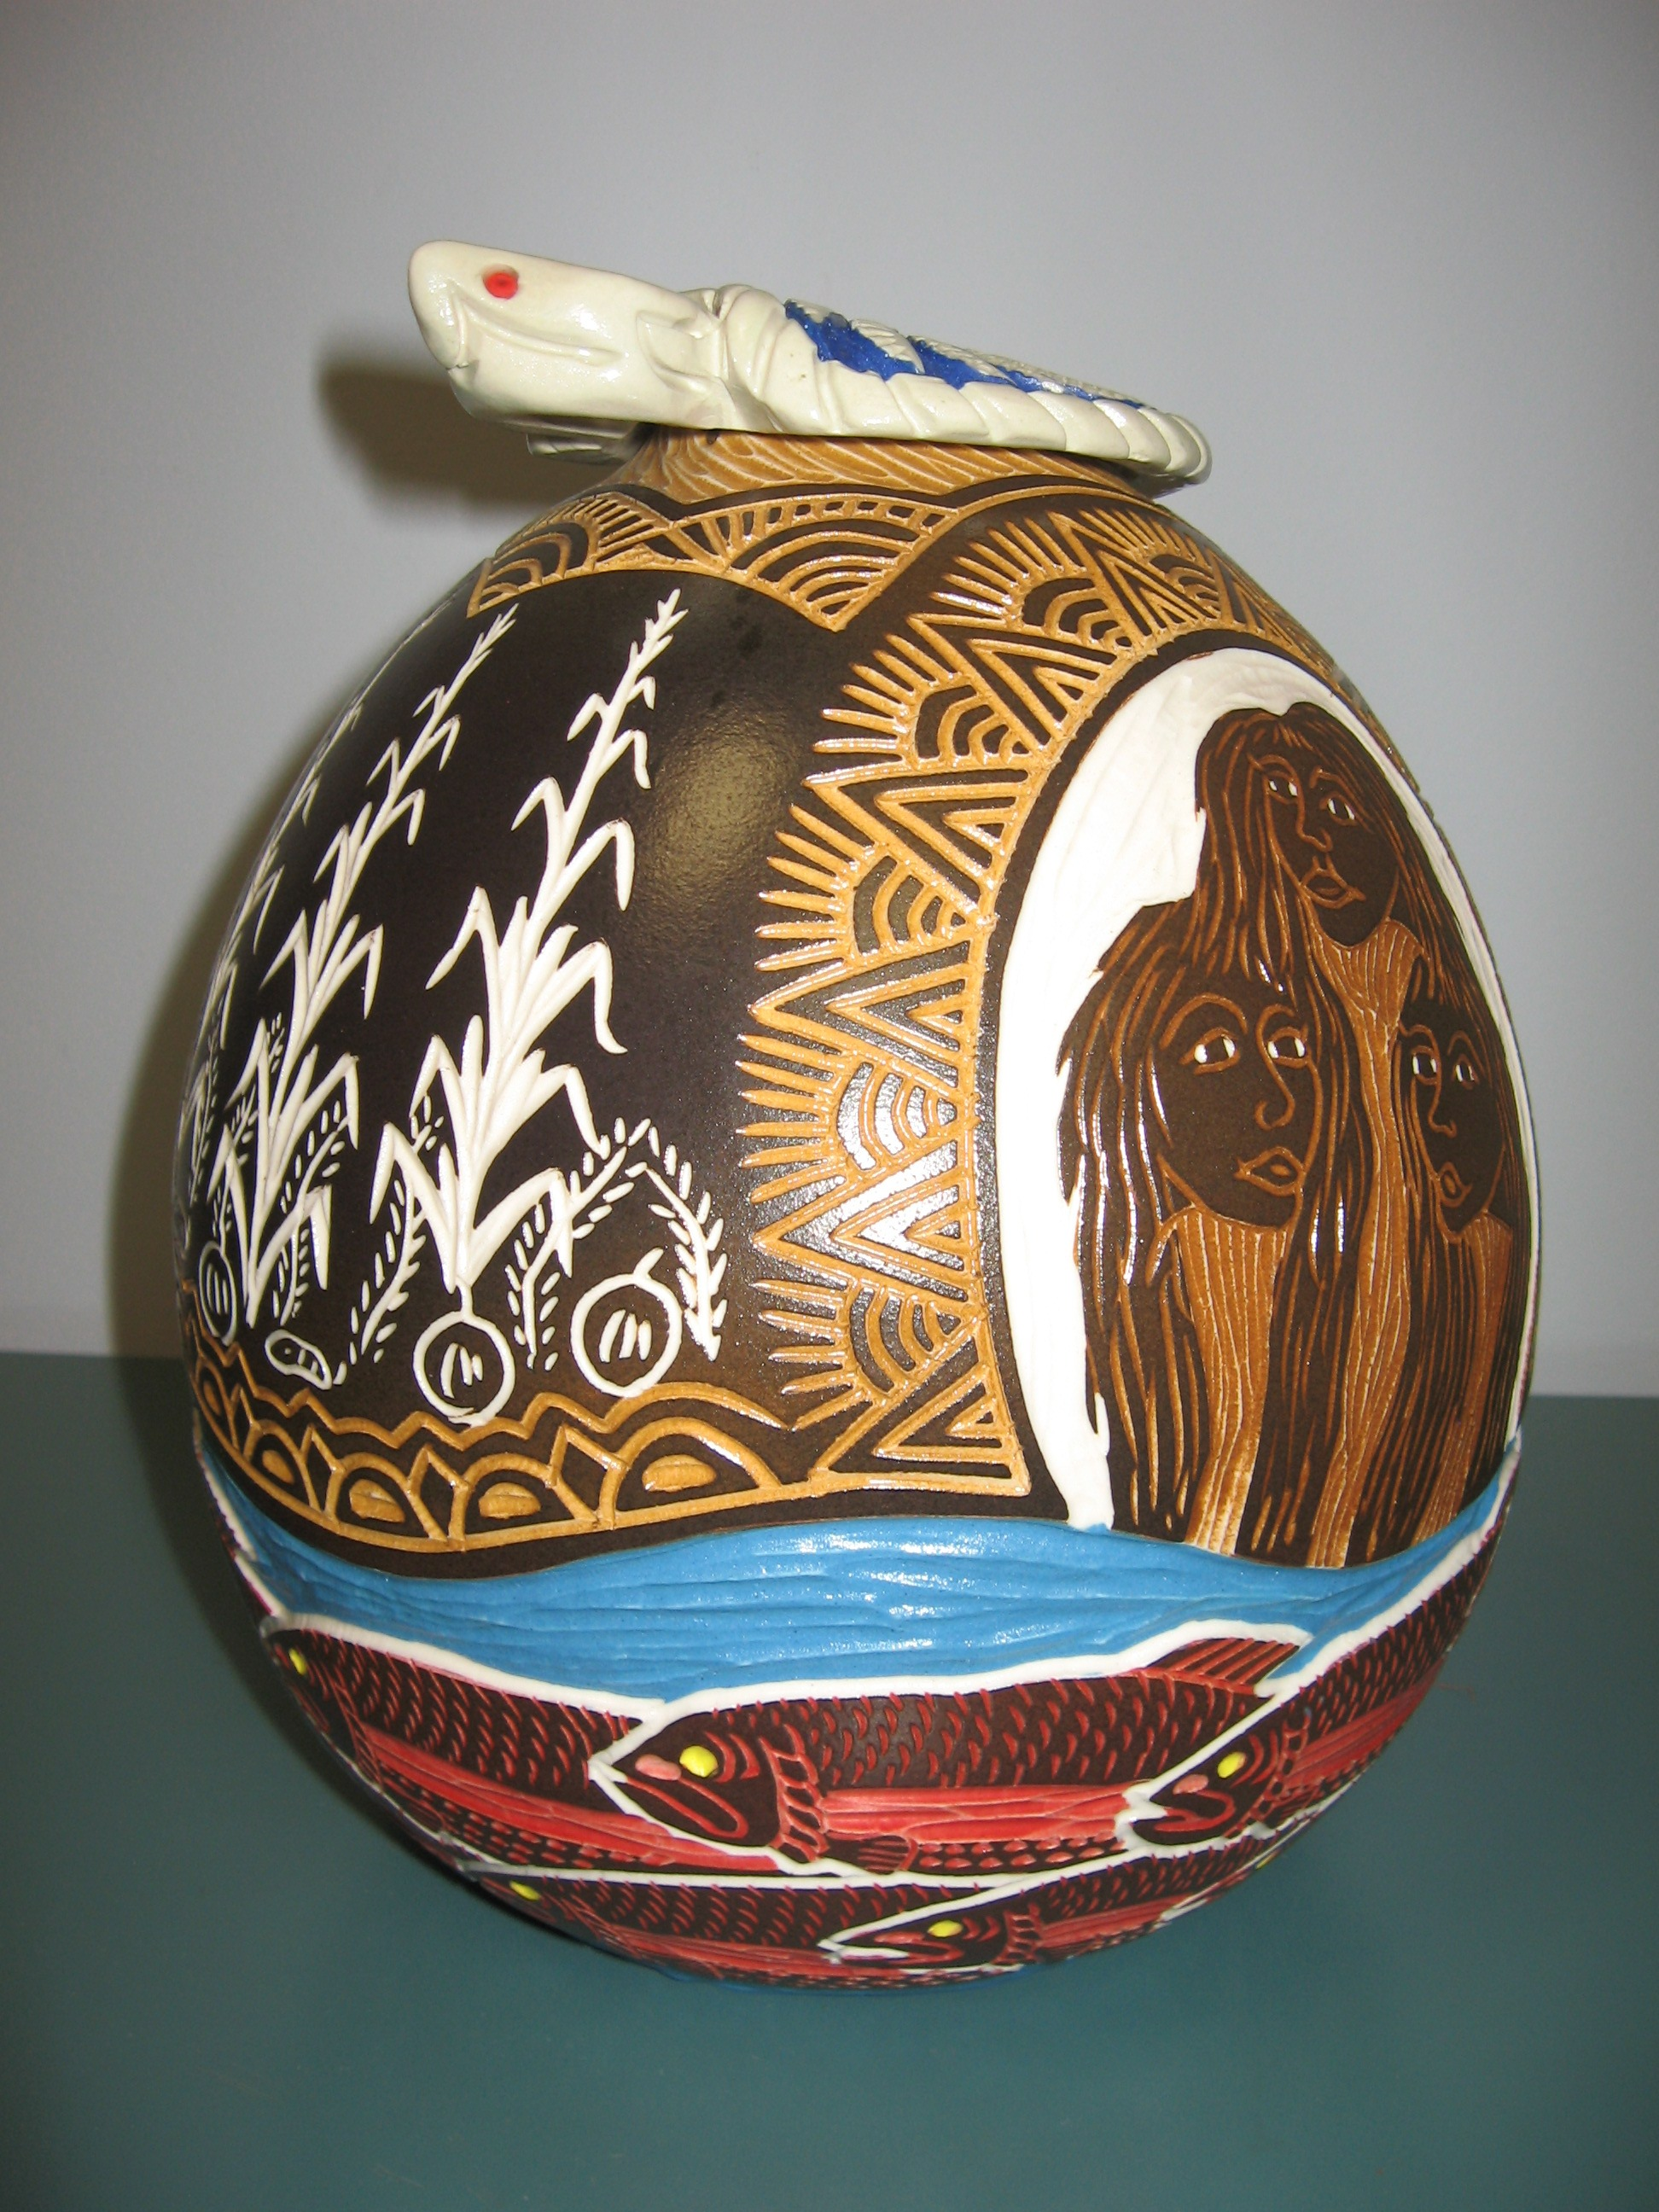 Turtle Seed Pot, Steven T. Smith, Centennial College Libraries